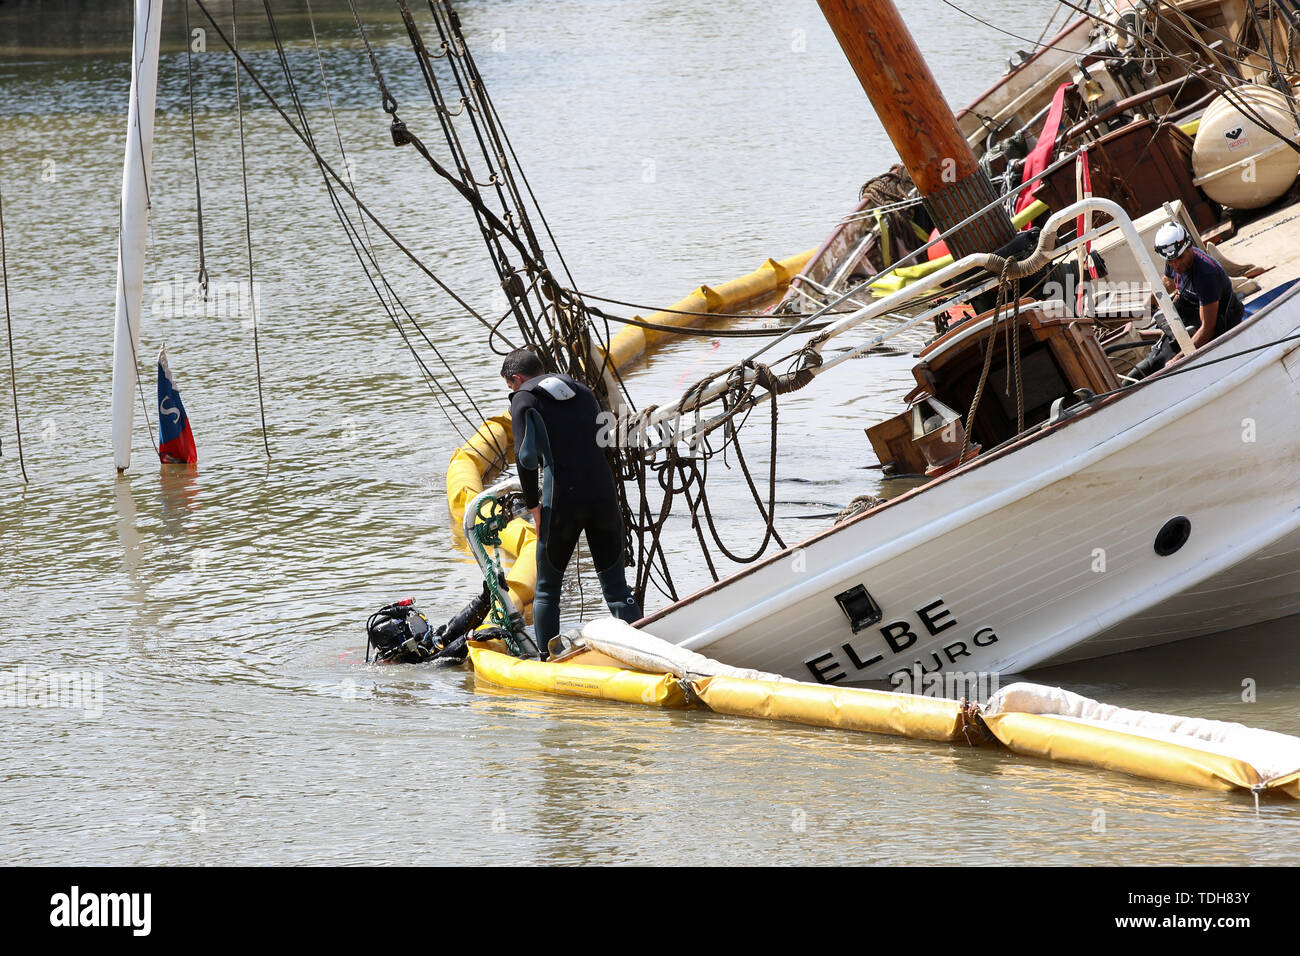 """Stadersand, Germany. 16th June, 2019. Employees of a Spanish company prepare with divers the salvage of the sunken historic sailing ship """"No 5 Elbe"""" in the harbour of Stadersand. The historic sailing ship, which has only recently been extensively renovated, collided with a container ship on the Elbe and sank. Credit: Bodo Marks/dpa/Alamy Live News Stock Photo"""